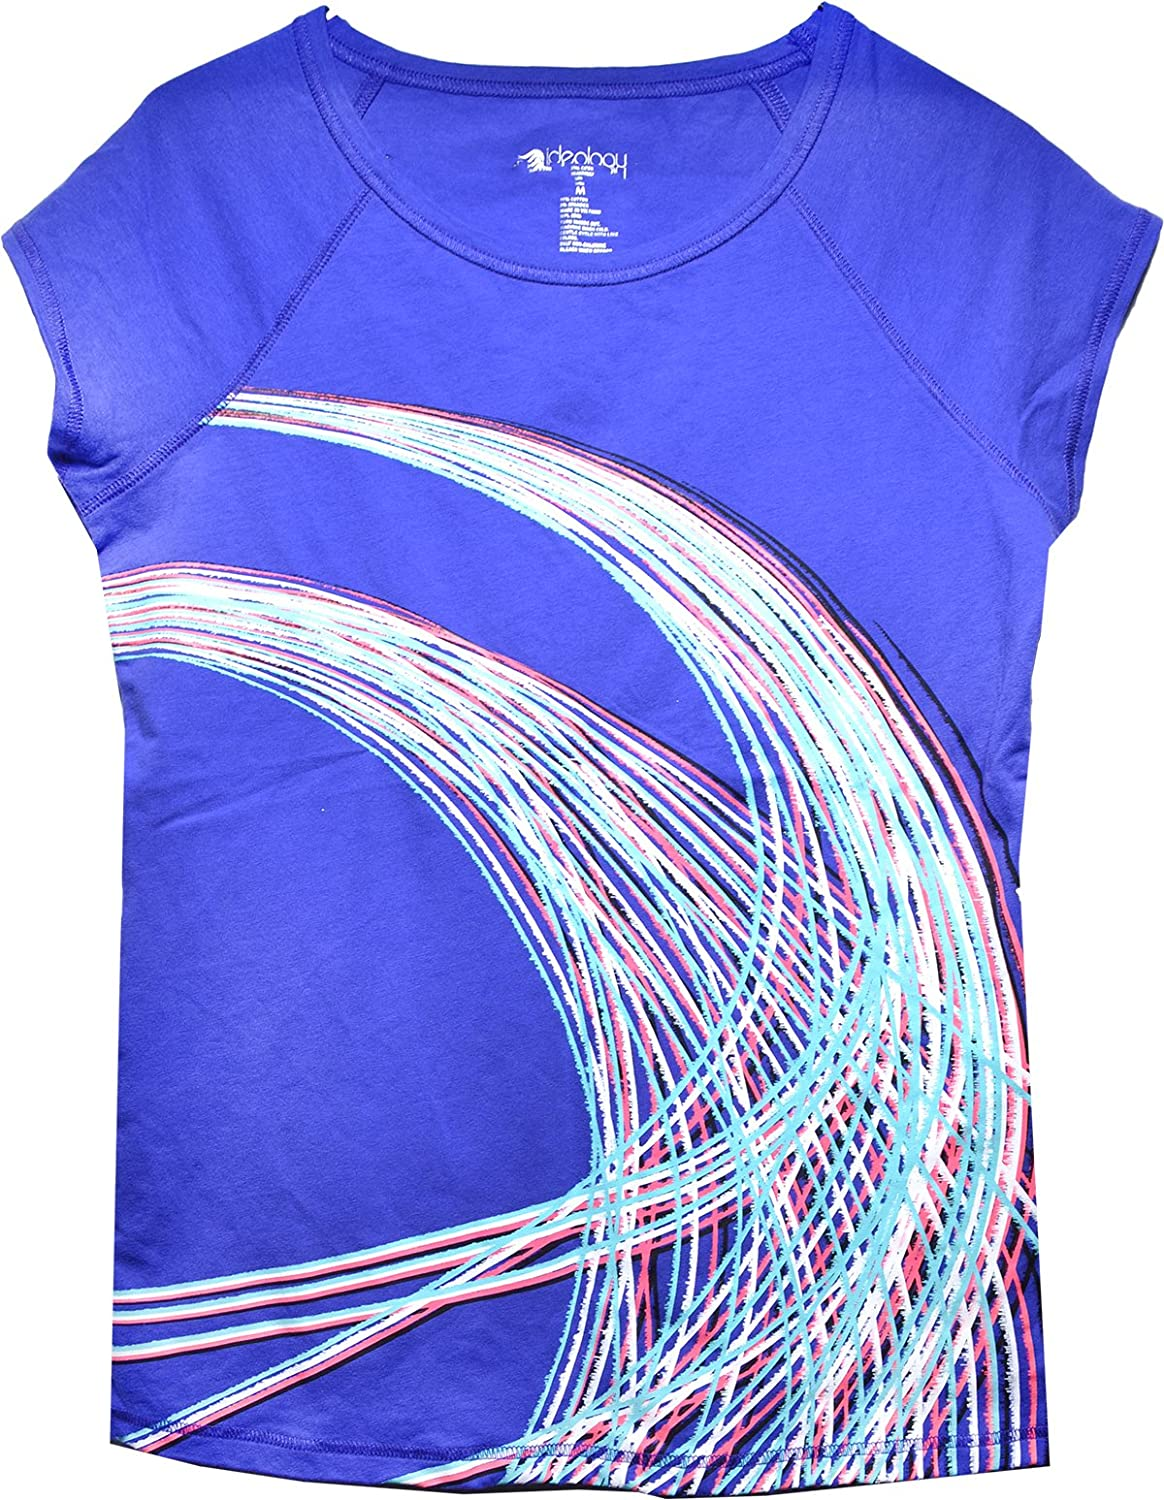 Ideology Women's Short-Sleeve Graphic-Print T-Shirt Top (Med) Purple